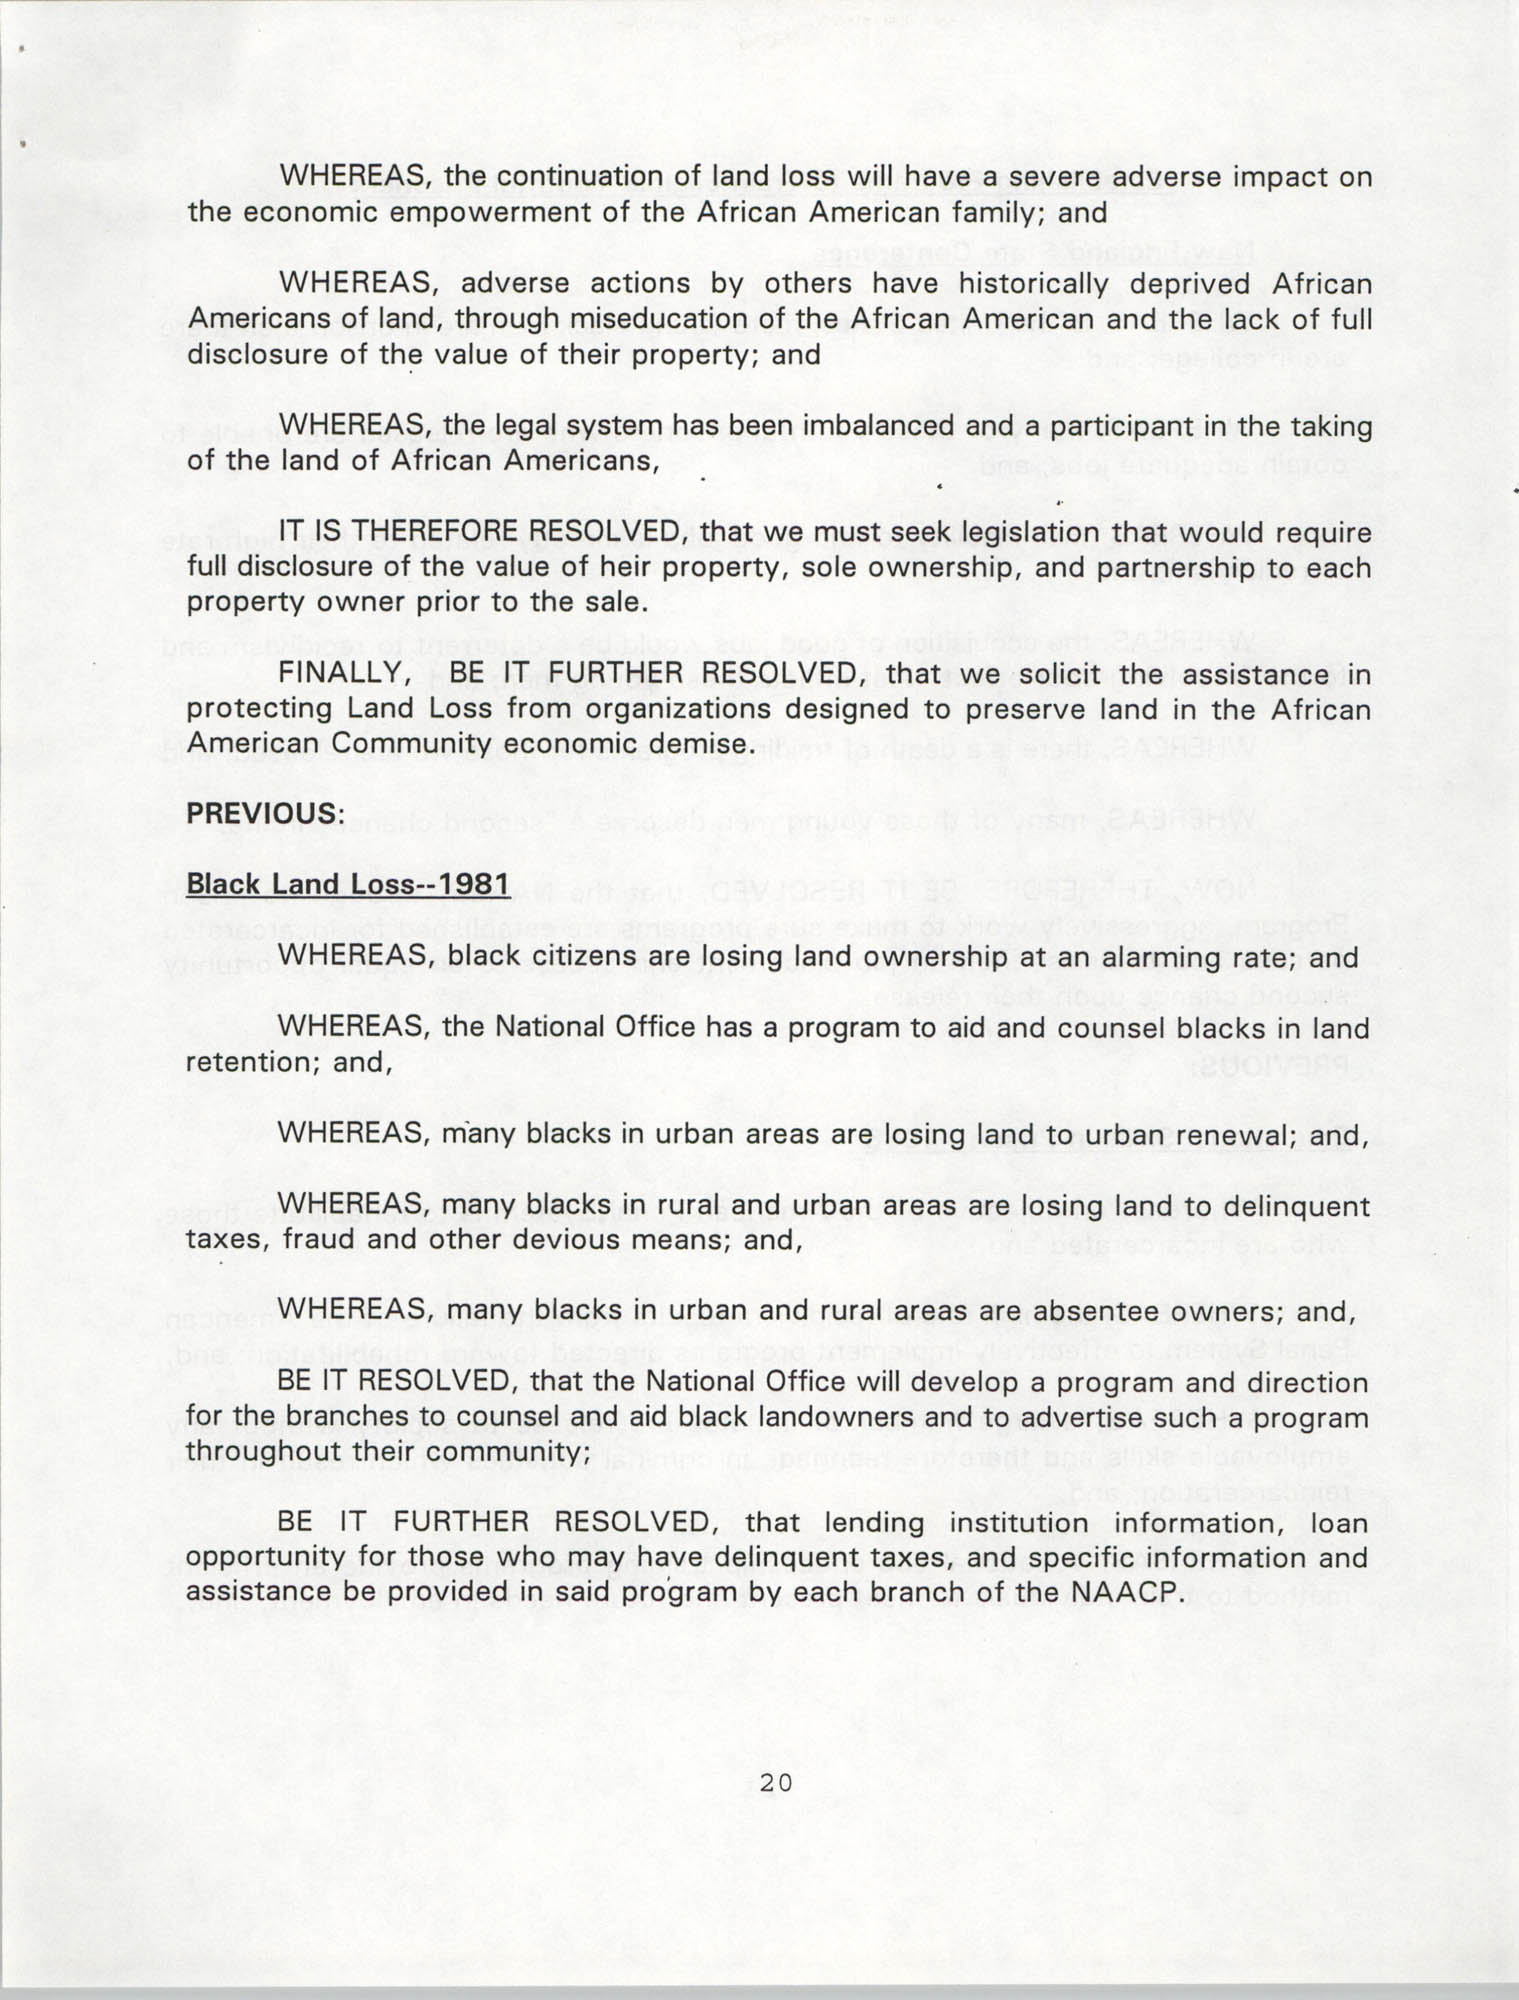 Resolutions Submitted Under Article X, Section 2 of the Constitution of the NAACP, 1994, Page 20